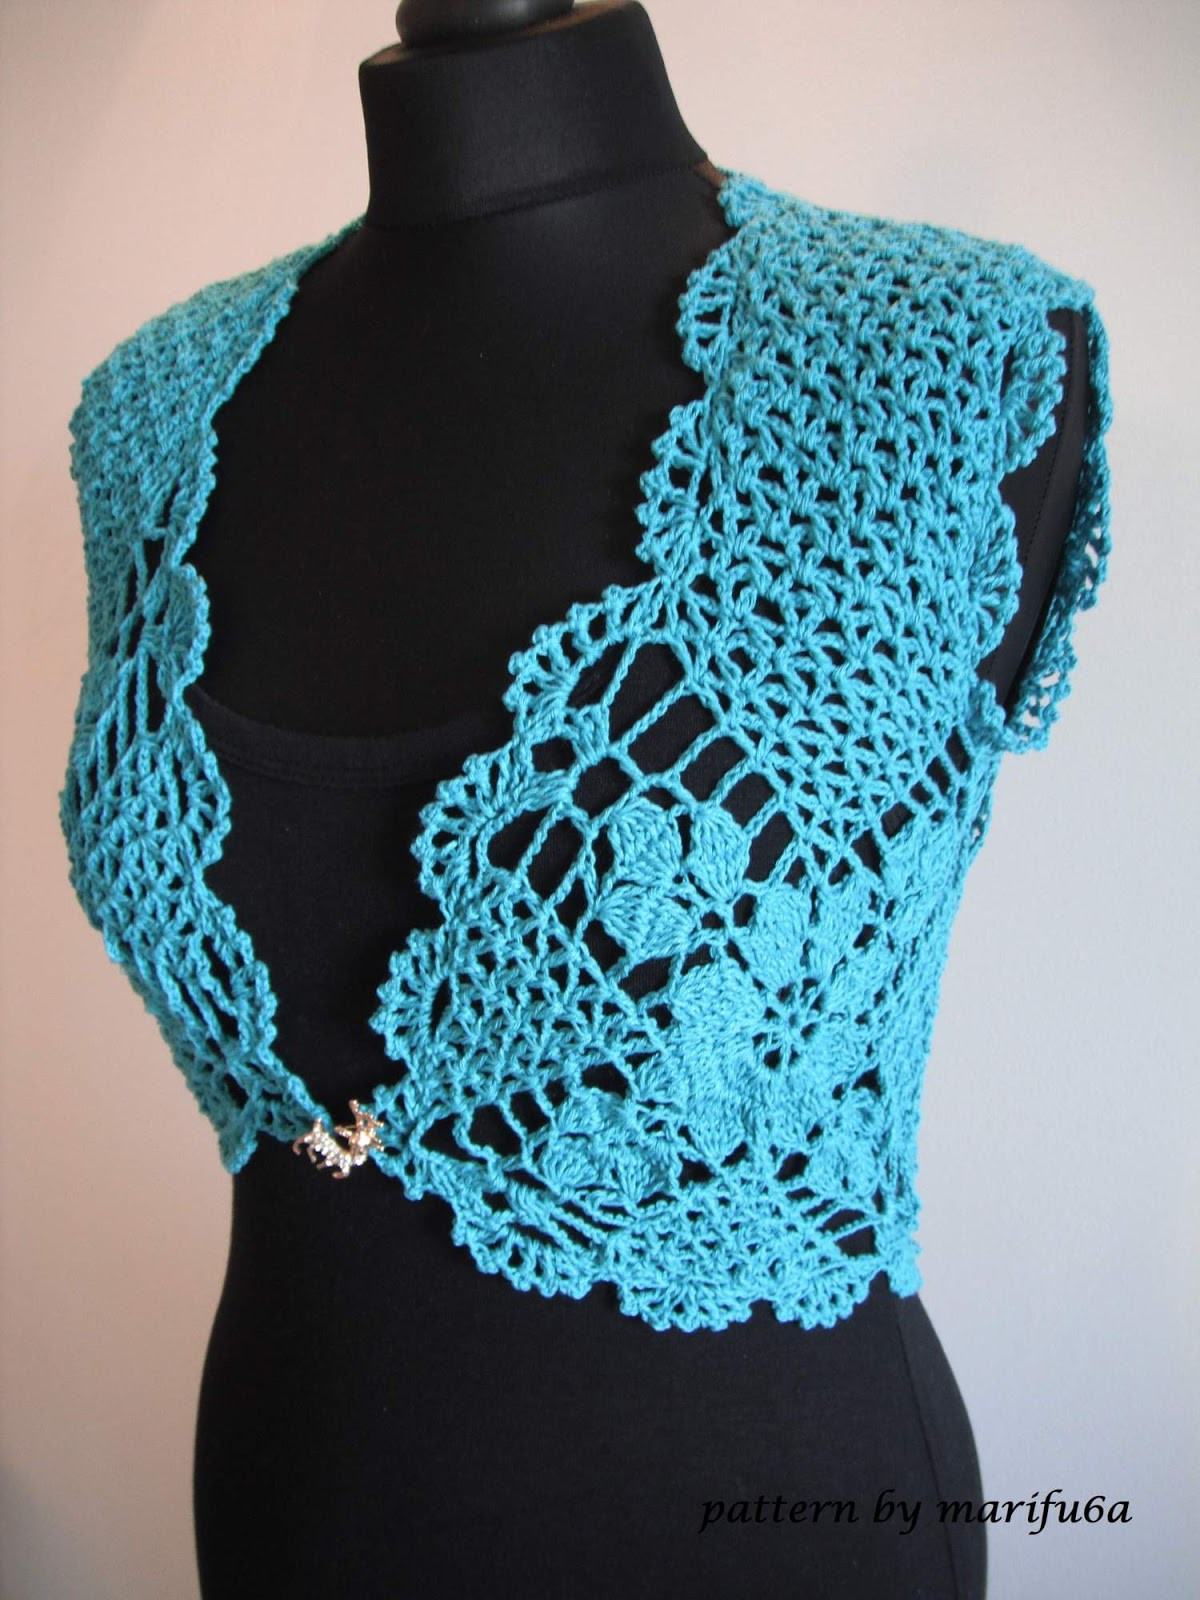 Crochet Bolero Patterns Awesome Free Crochet Patterns and Video Tutorials How to Crochet Of Amazing 40 Models Crochet Bolero Patterns